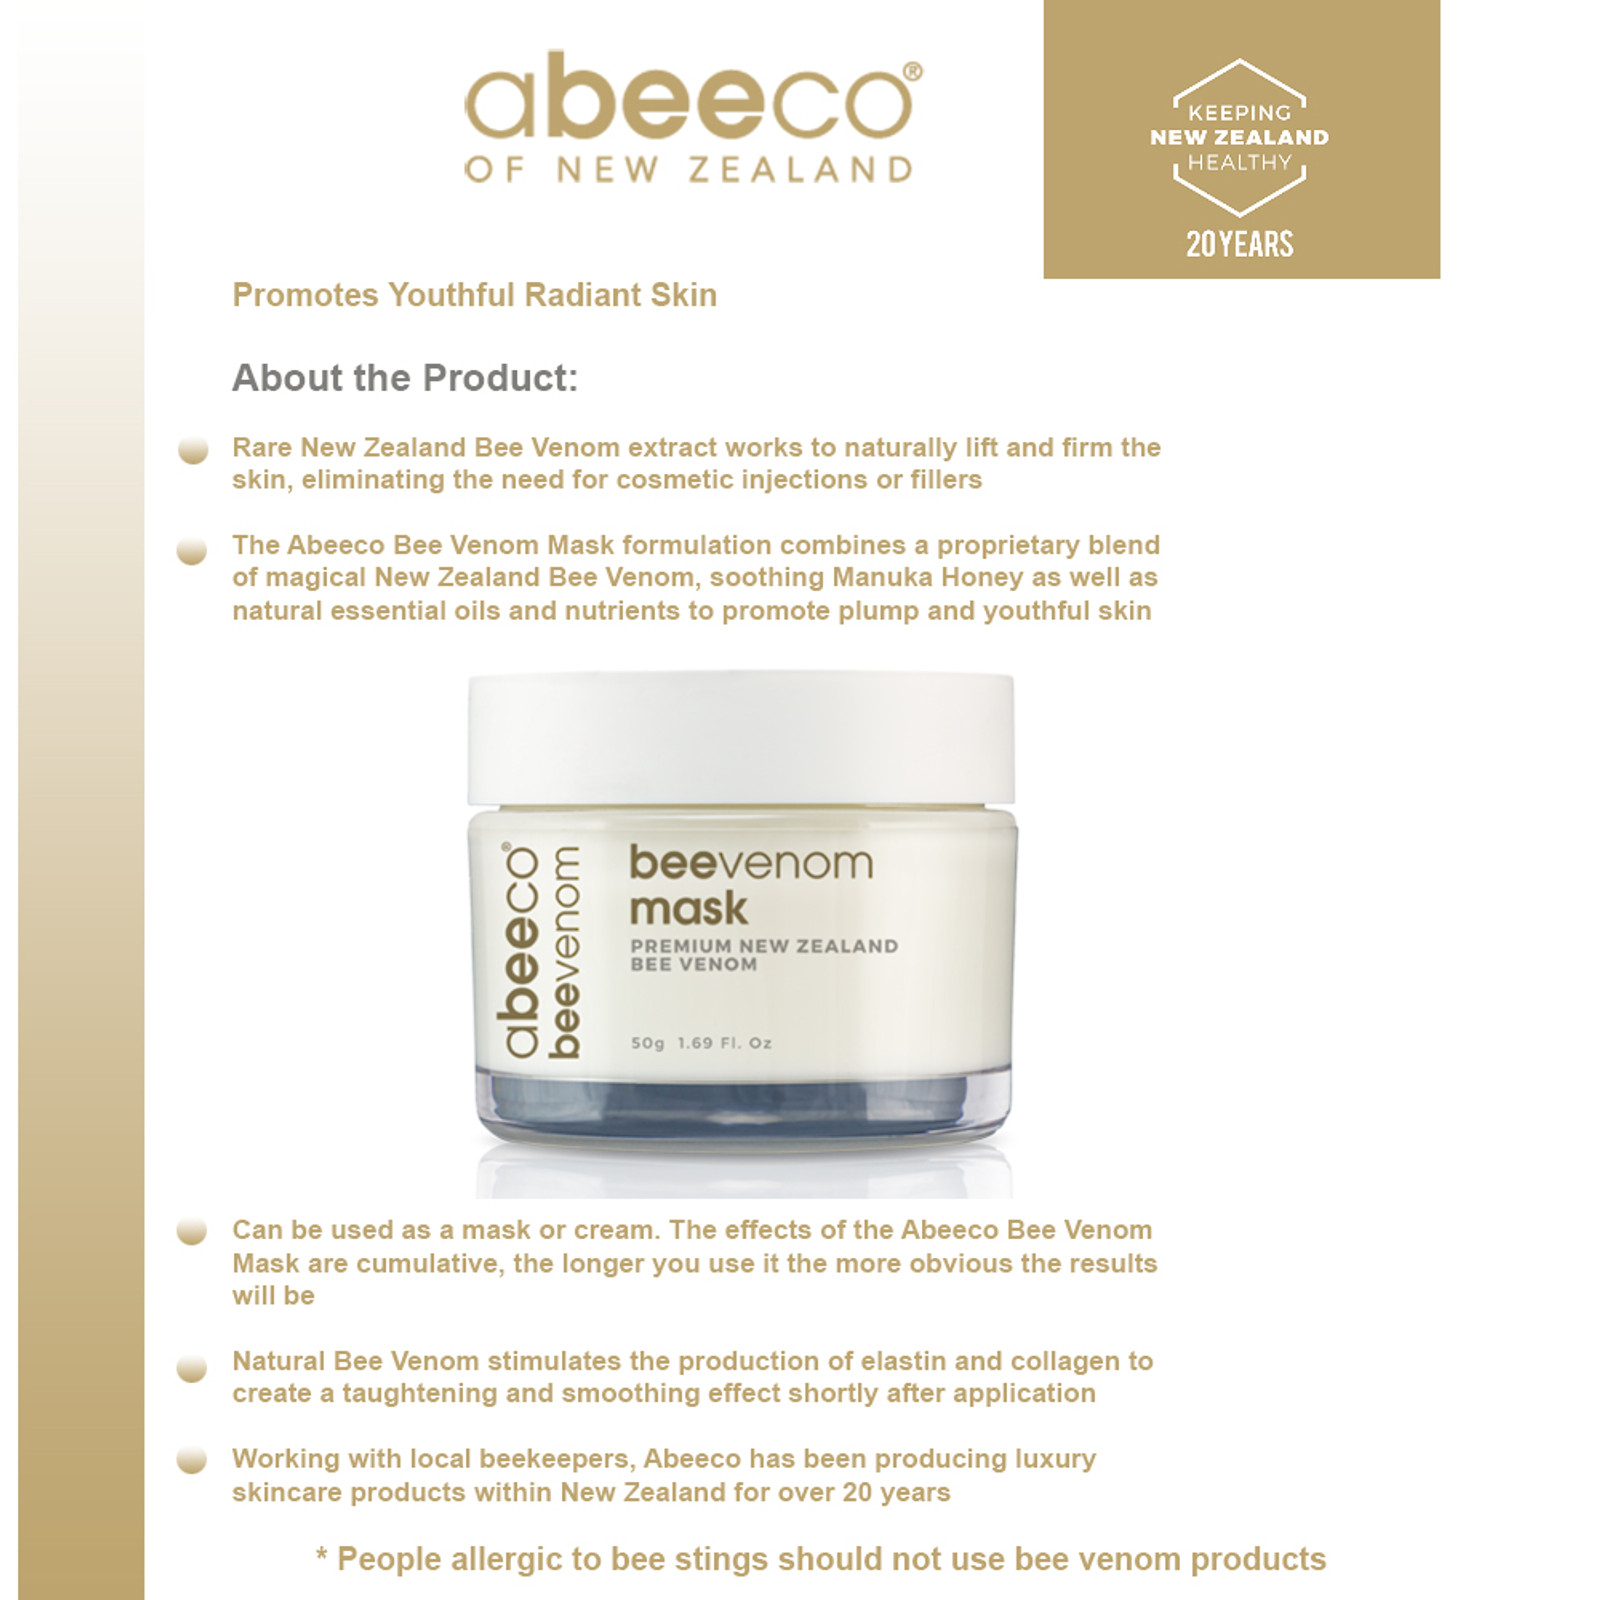 Abeeco Pure New Zealand Bee Venom Mask